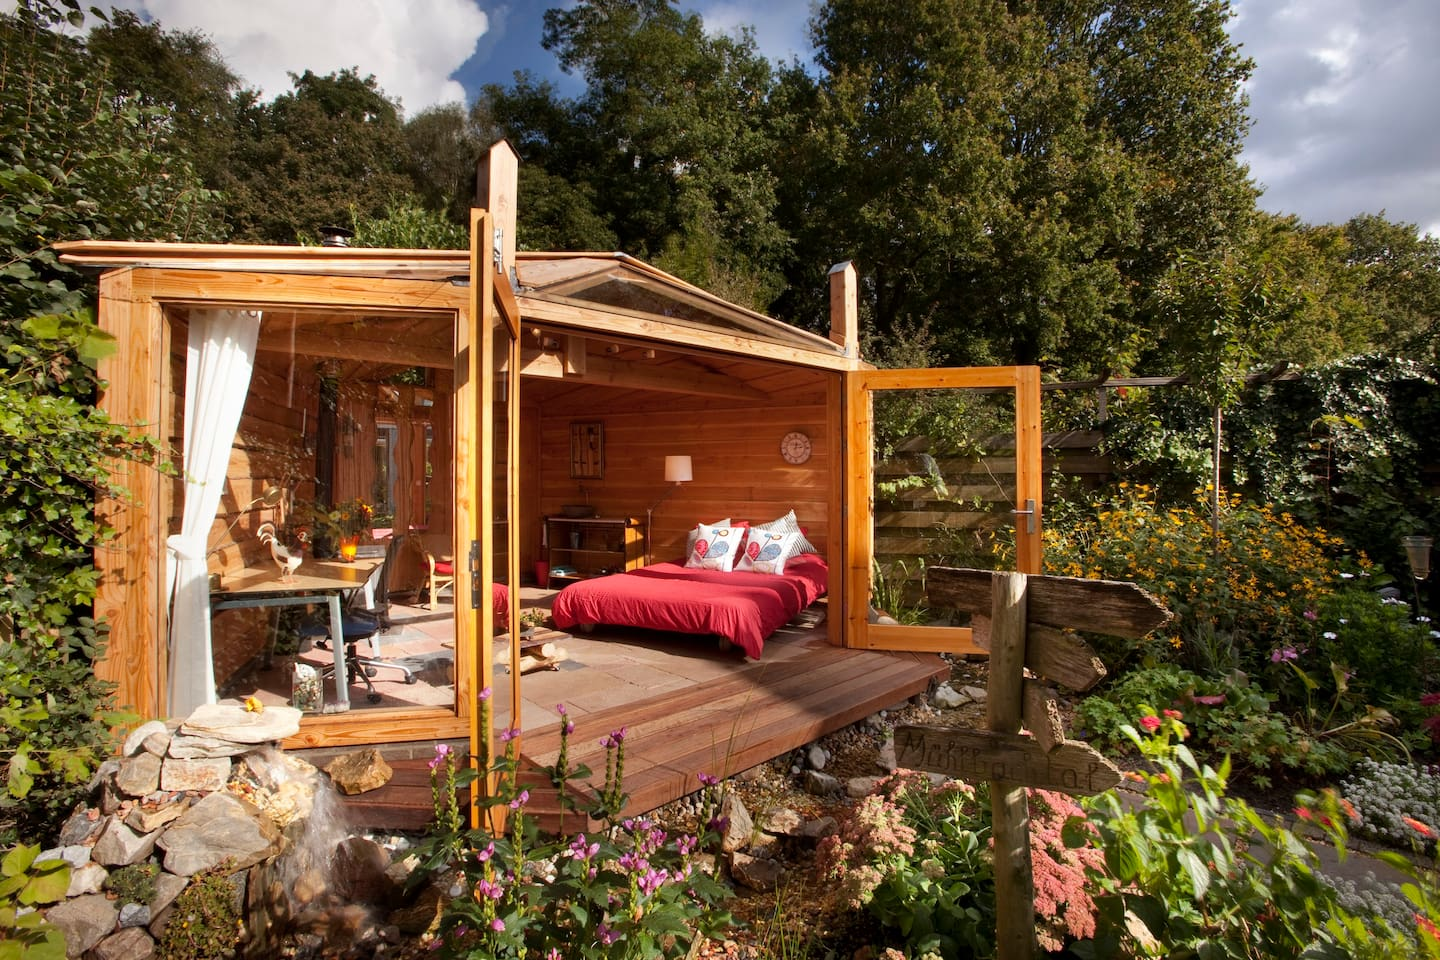 Charming gardenroom with woodstove